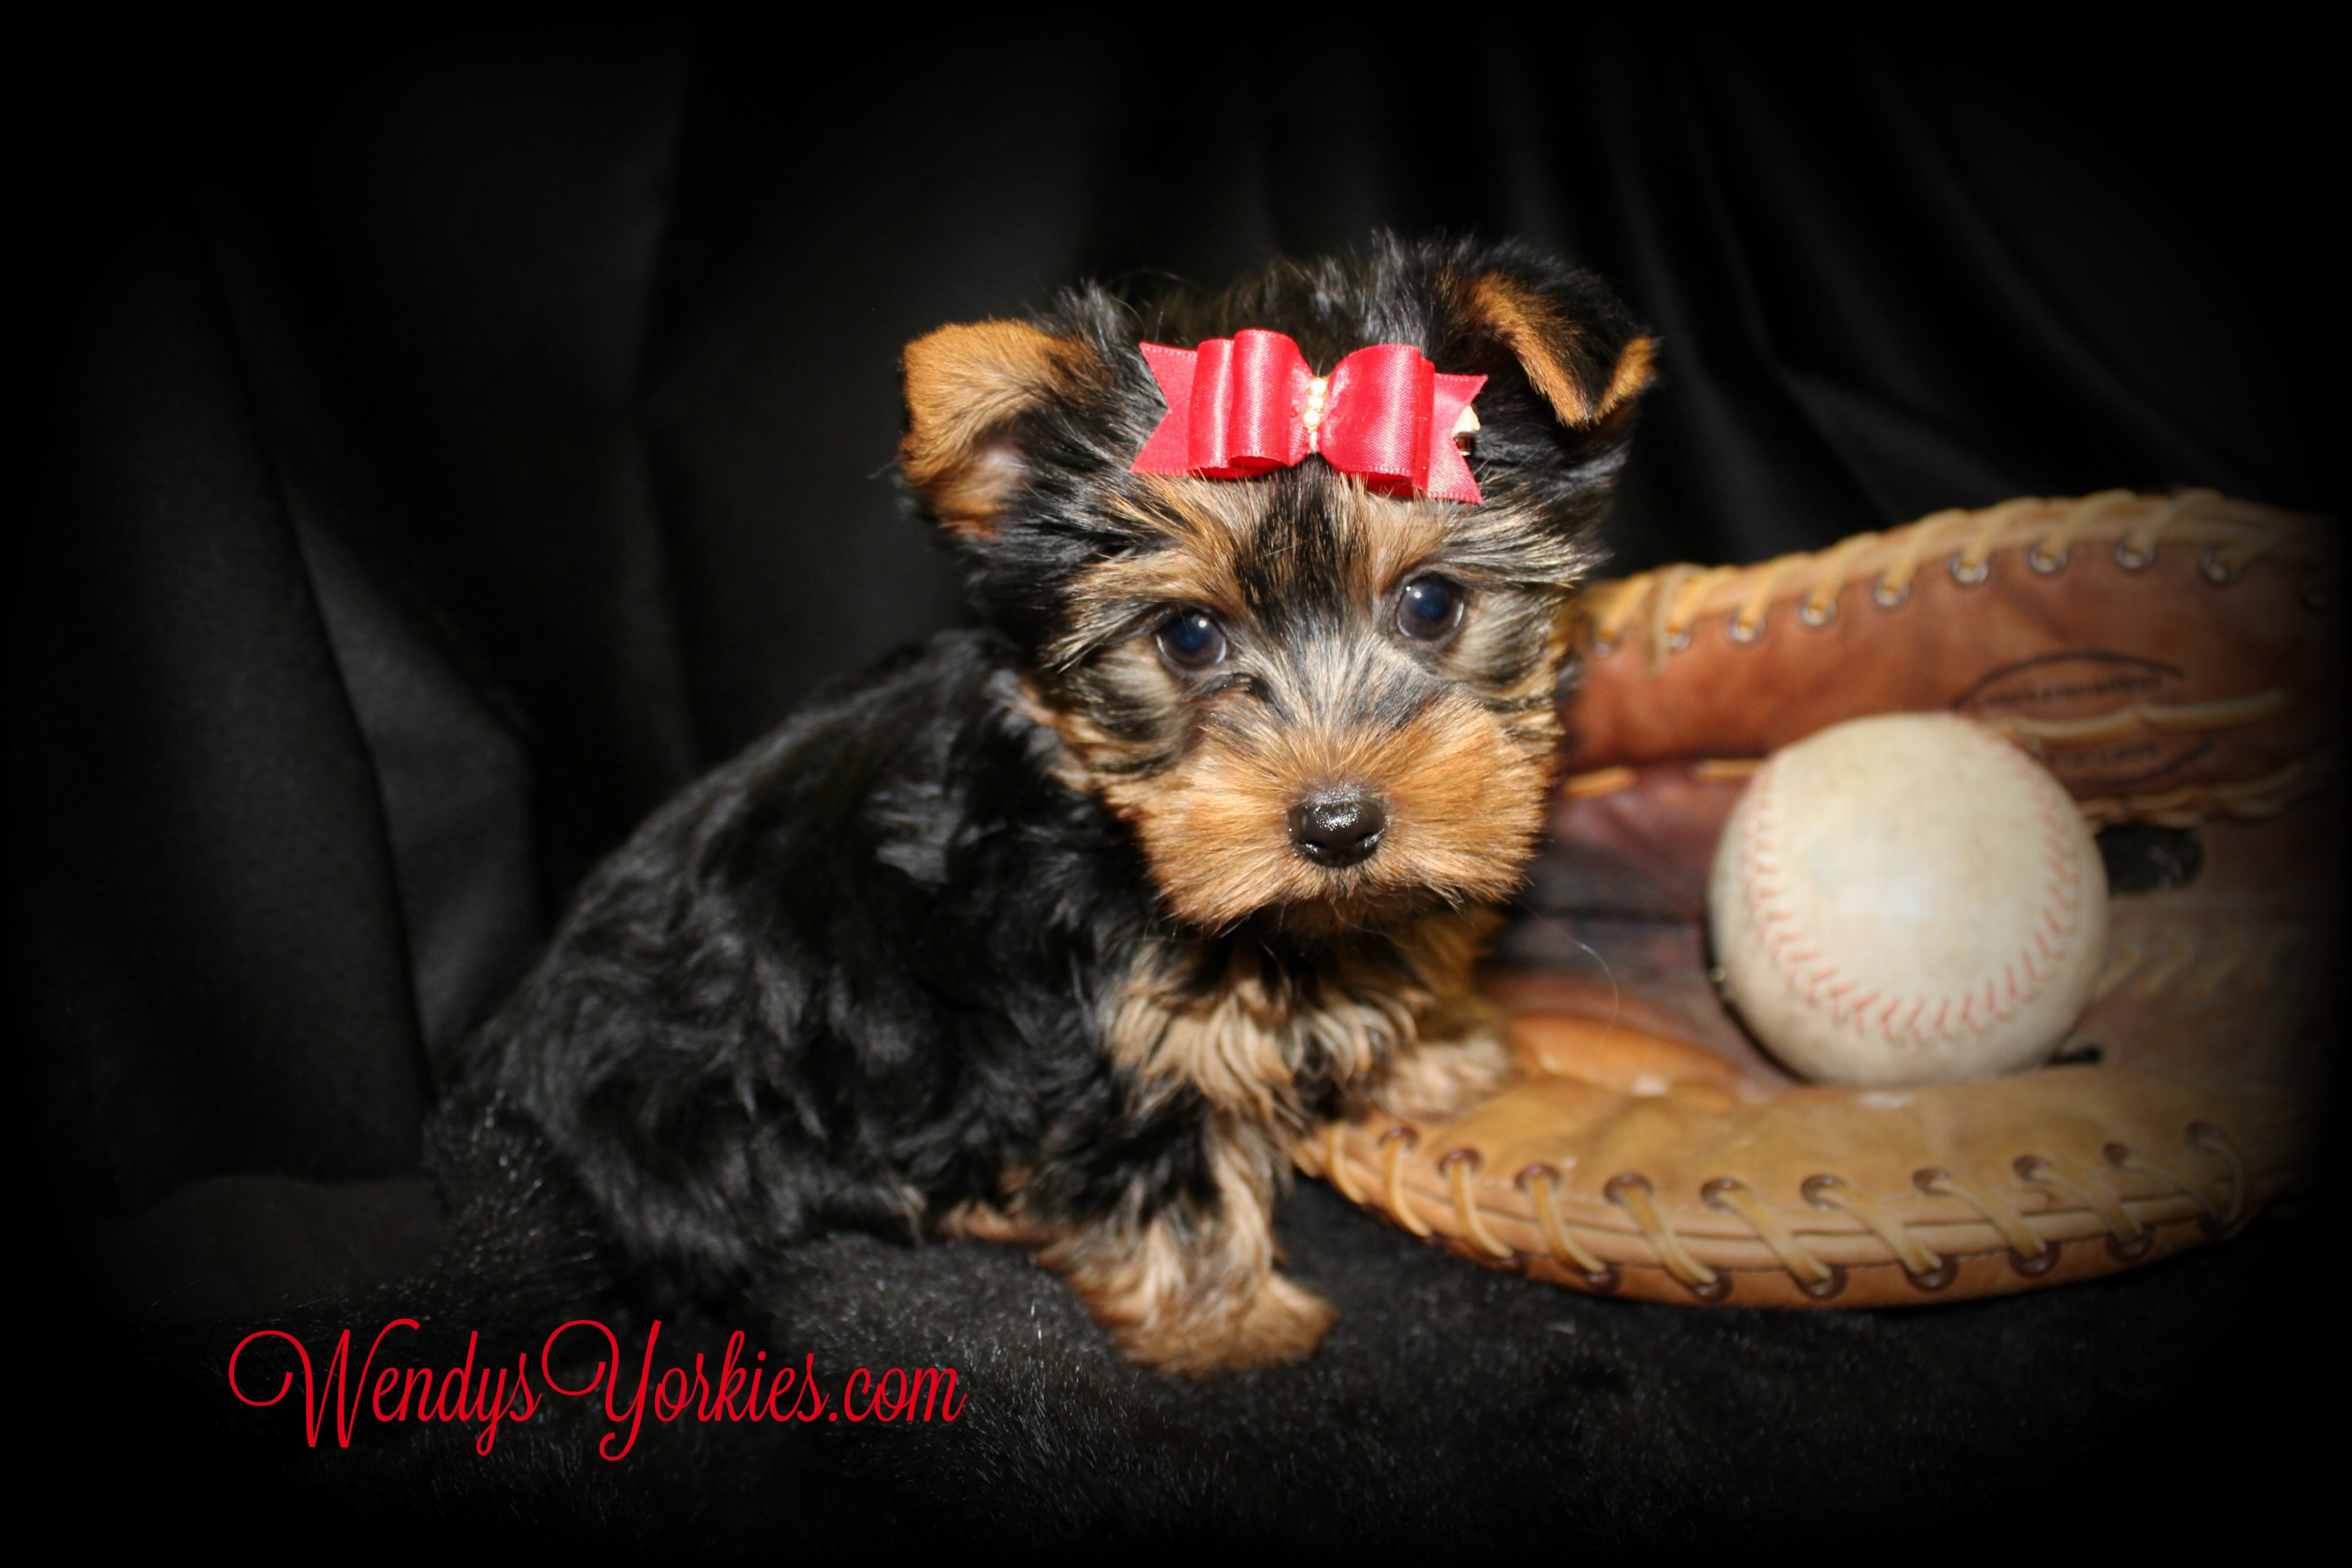 WendysYorkies.com, Star m1, Cute male yorkie puppy